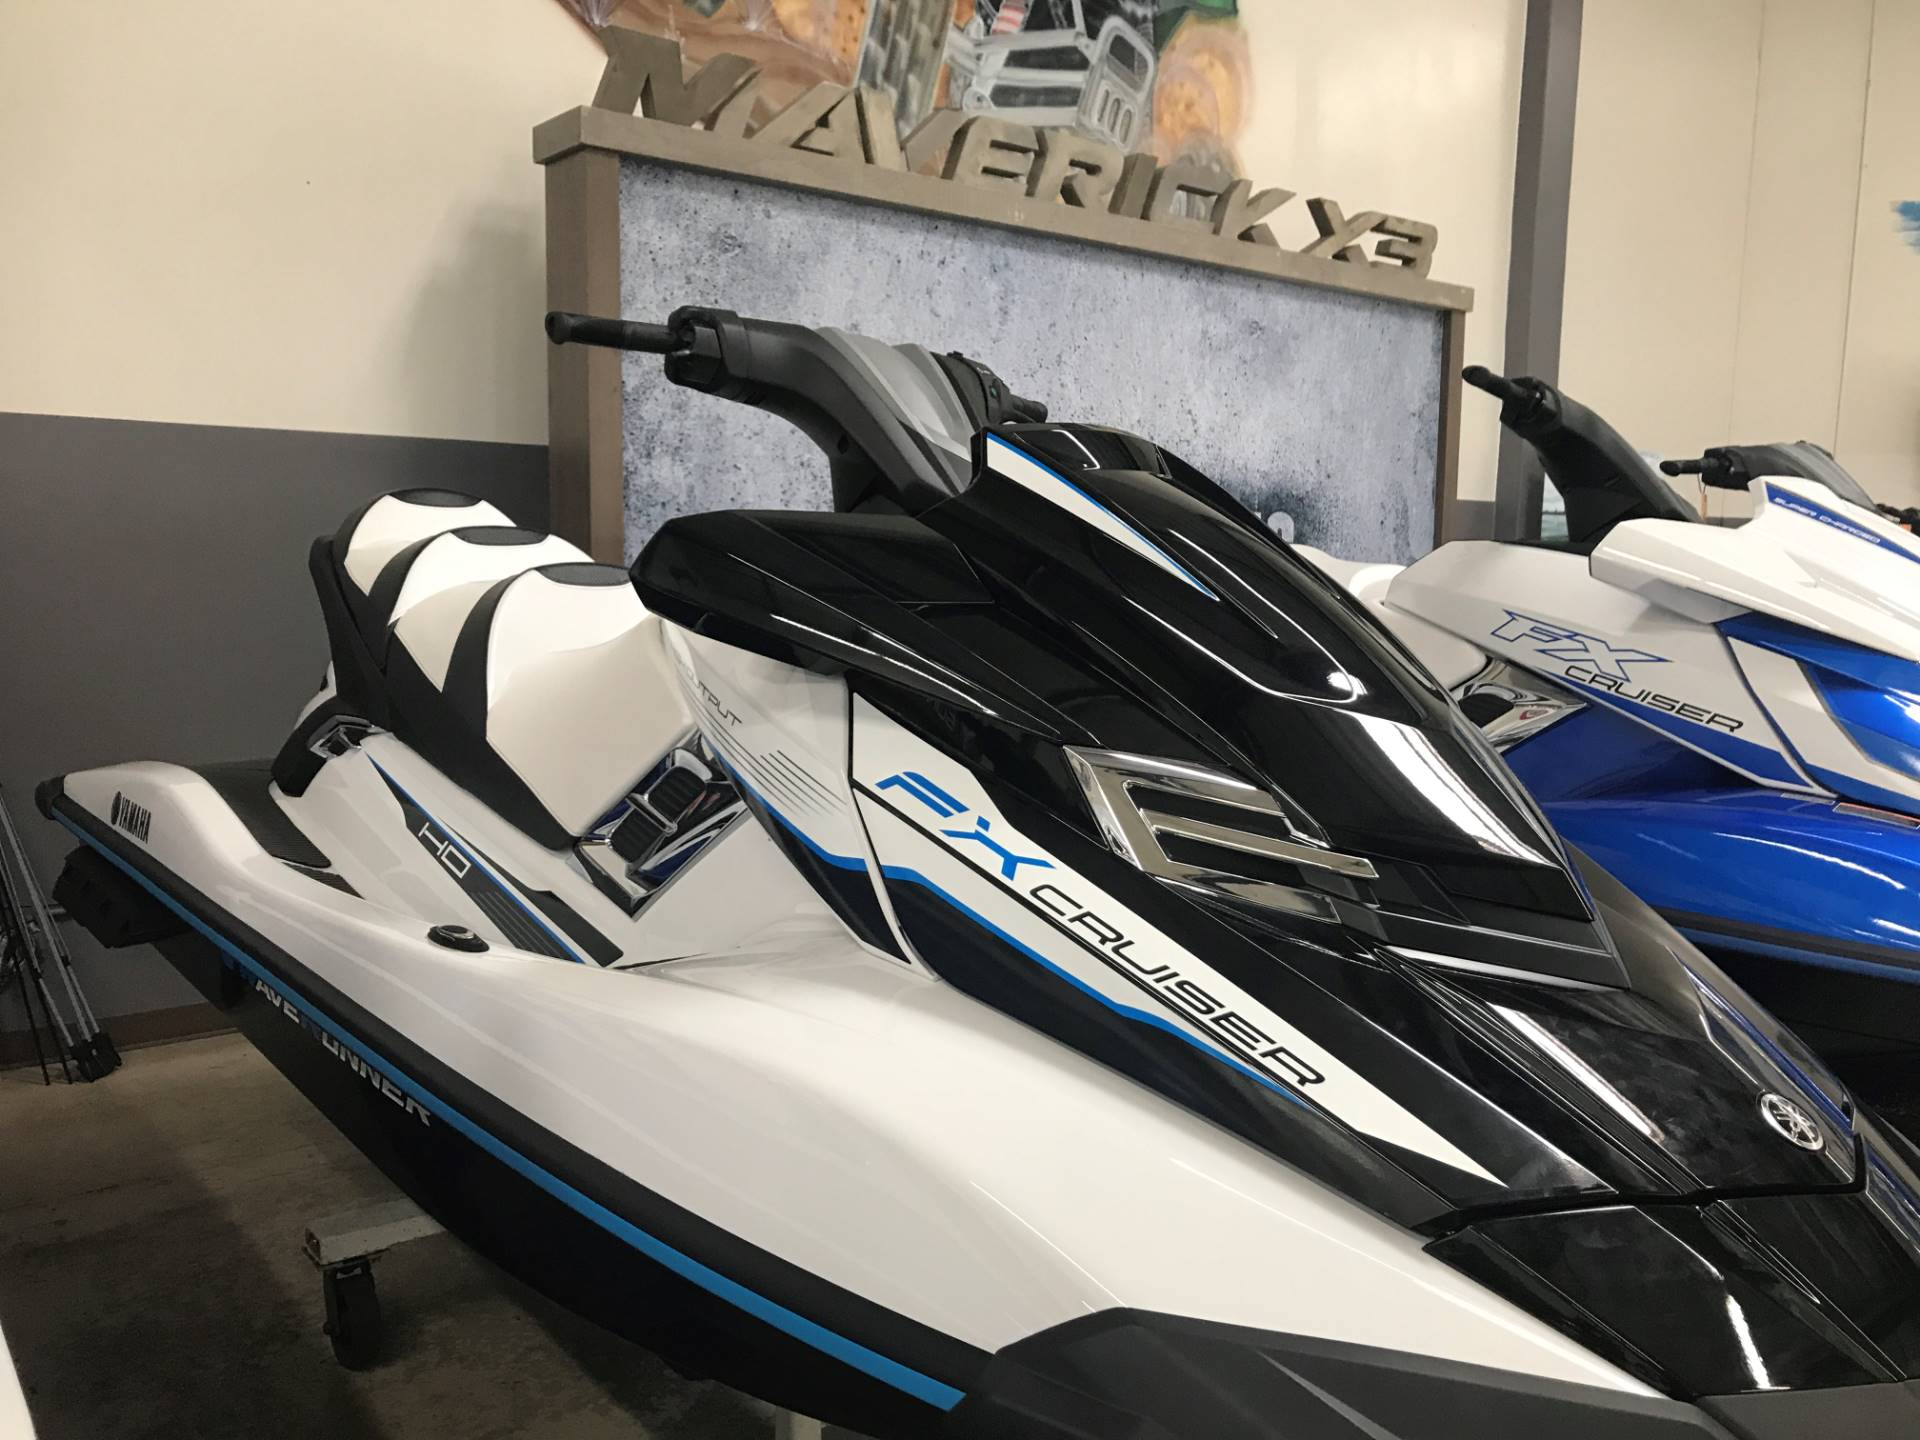 2018 Yamaha FX Cruiser HO for sale 216016